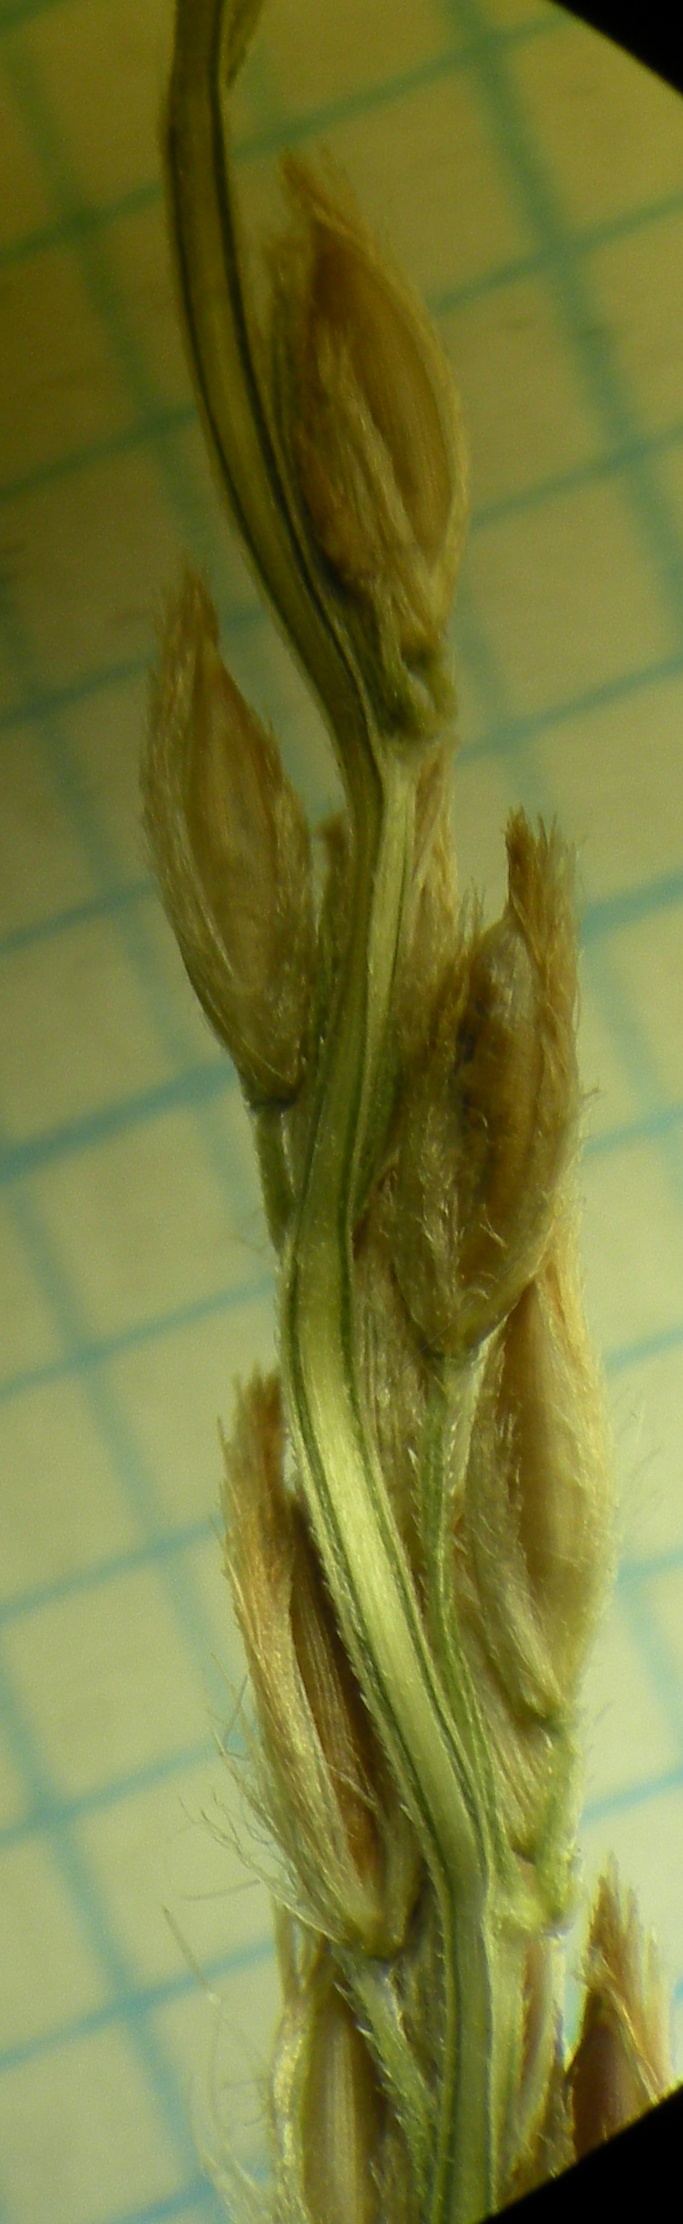 Spikelets on rachis branch